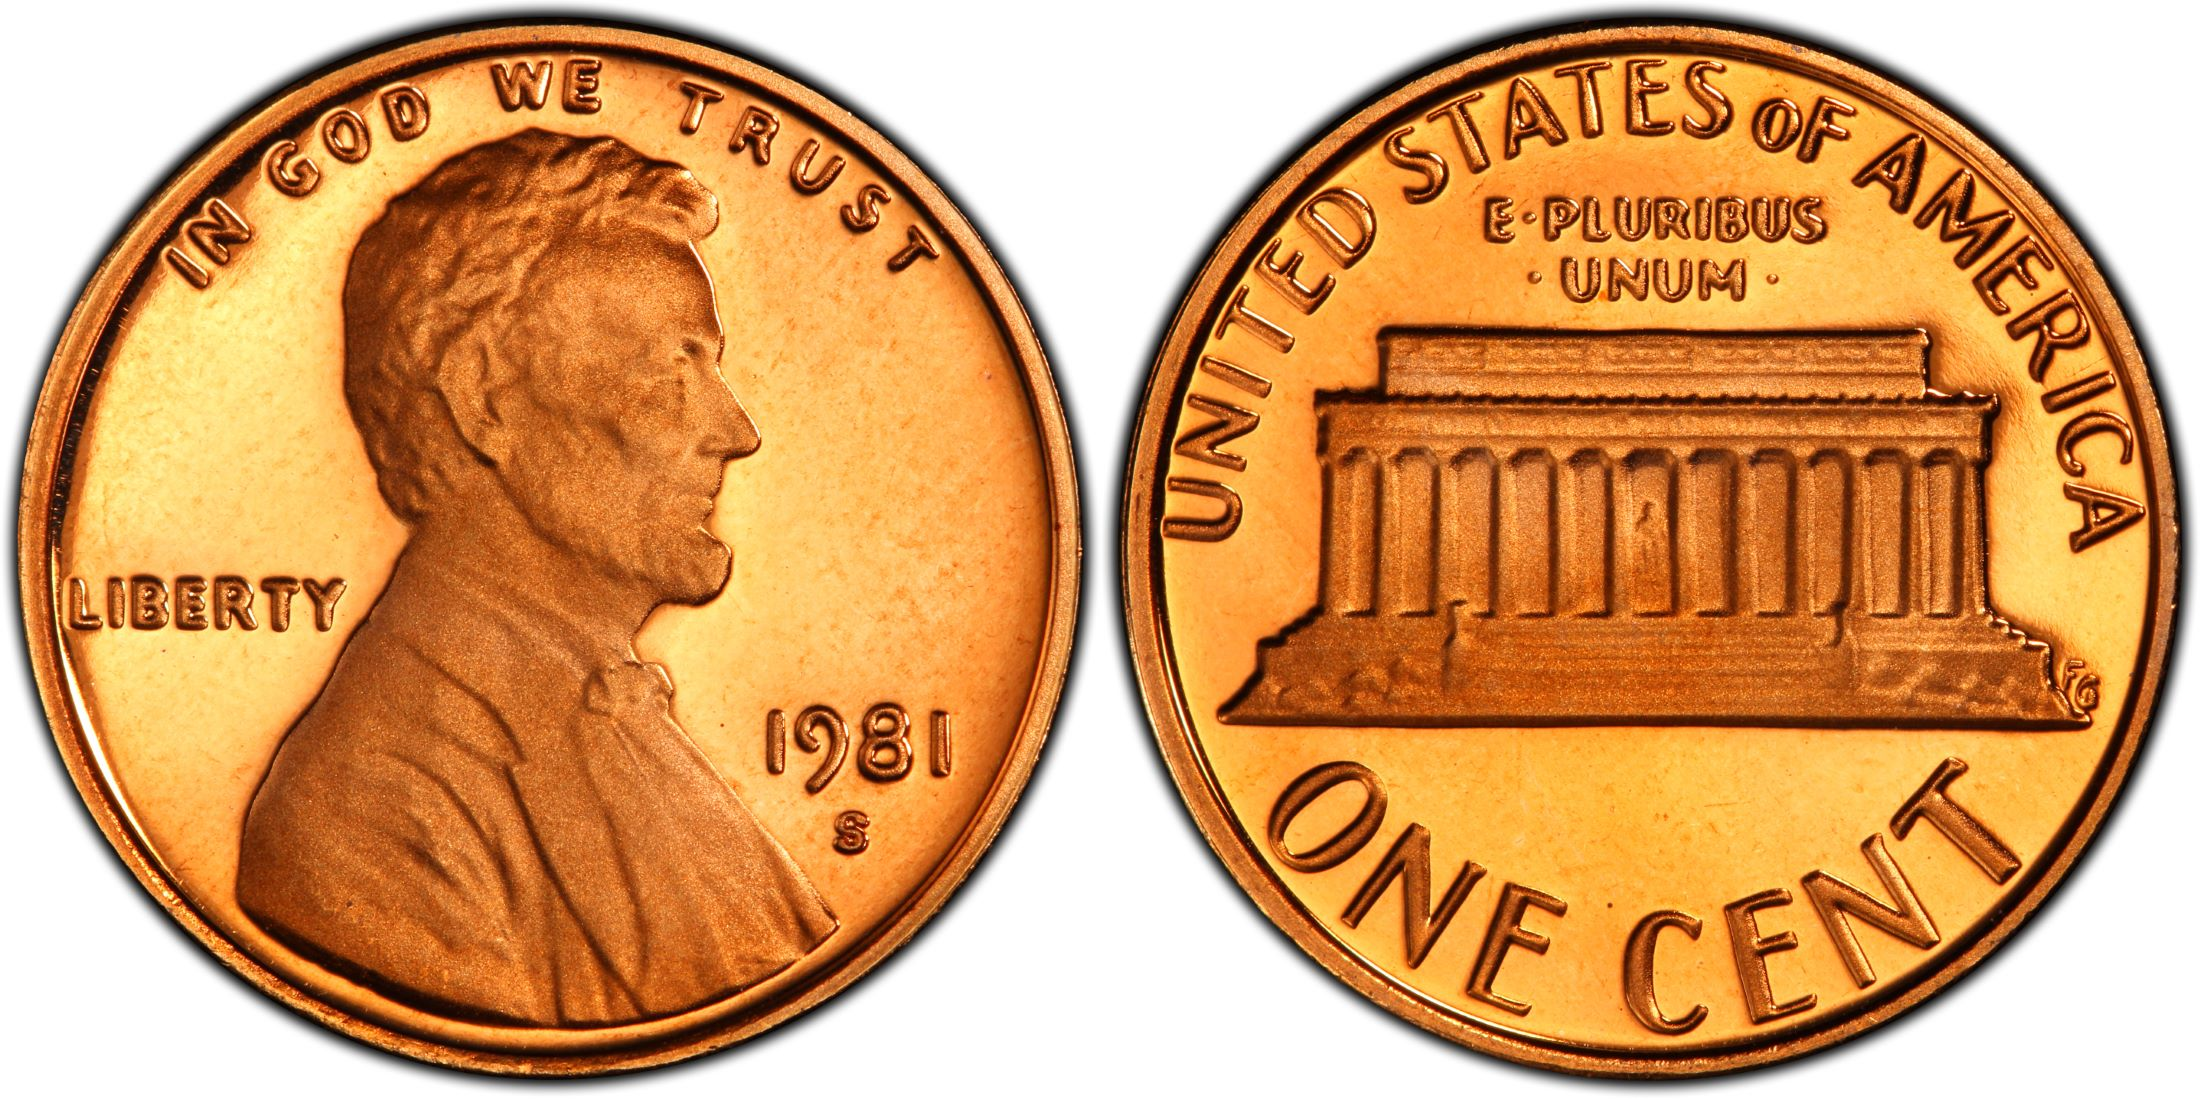 1981 S Lincoln Memorial Proof Penny Type 1 ~ Coin from U.S Mint Proof Set